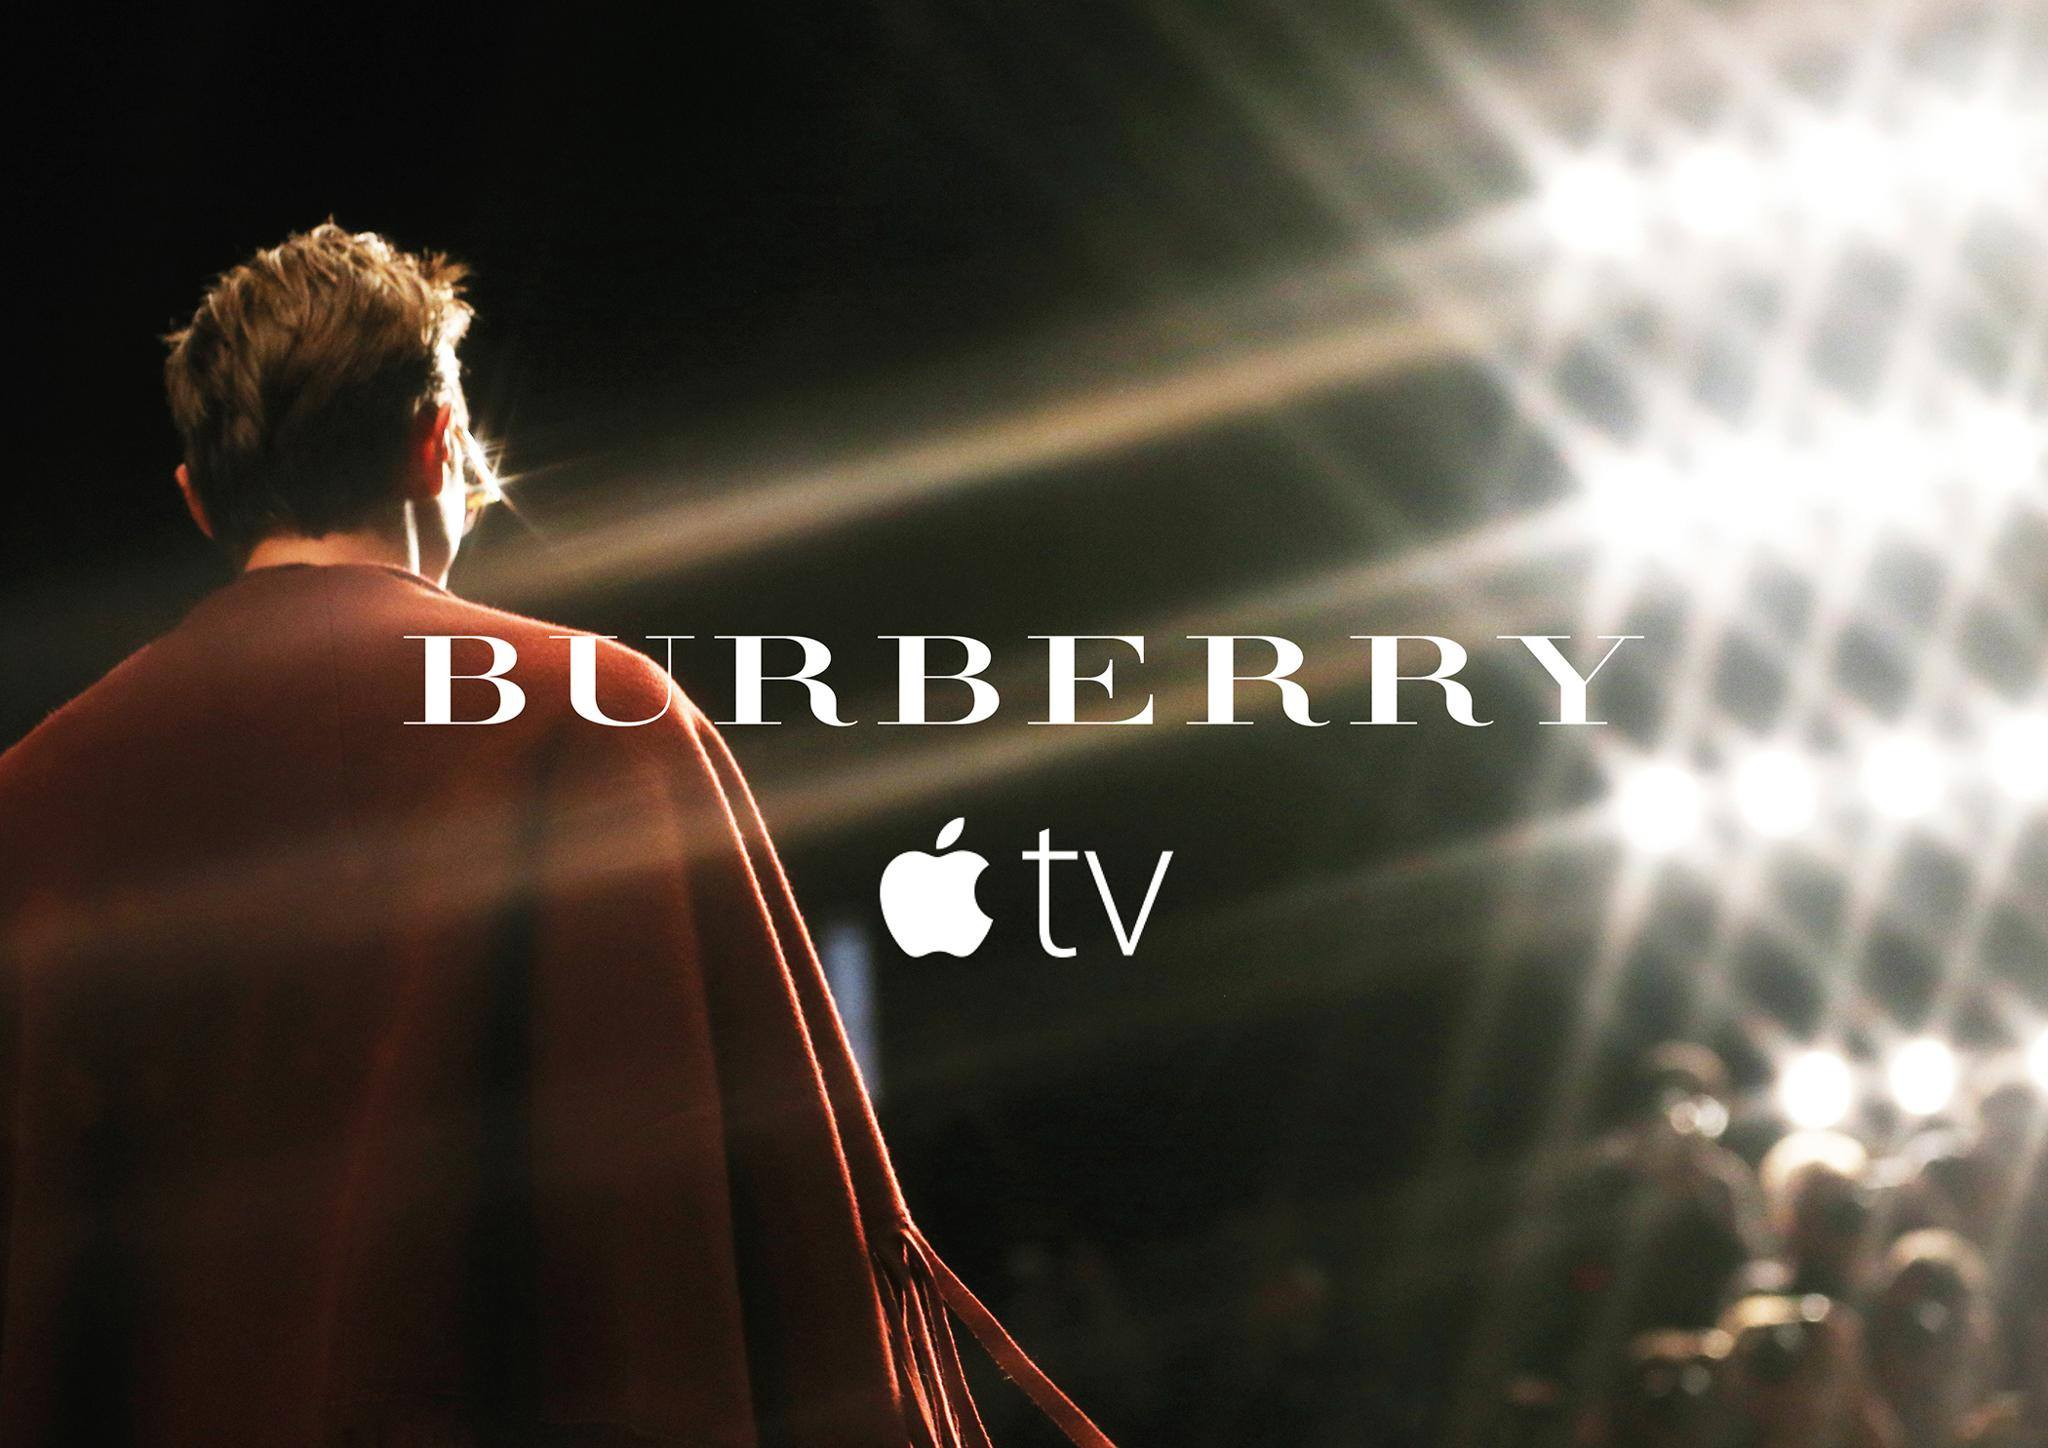 The 2016 Burberry menswear event comes to Apple TV